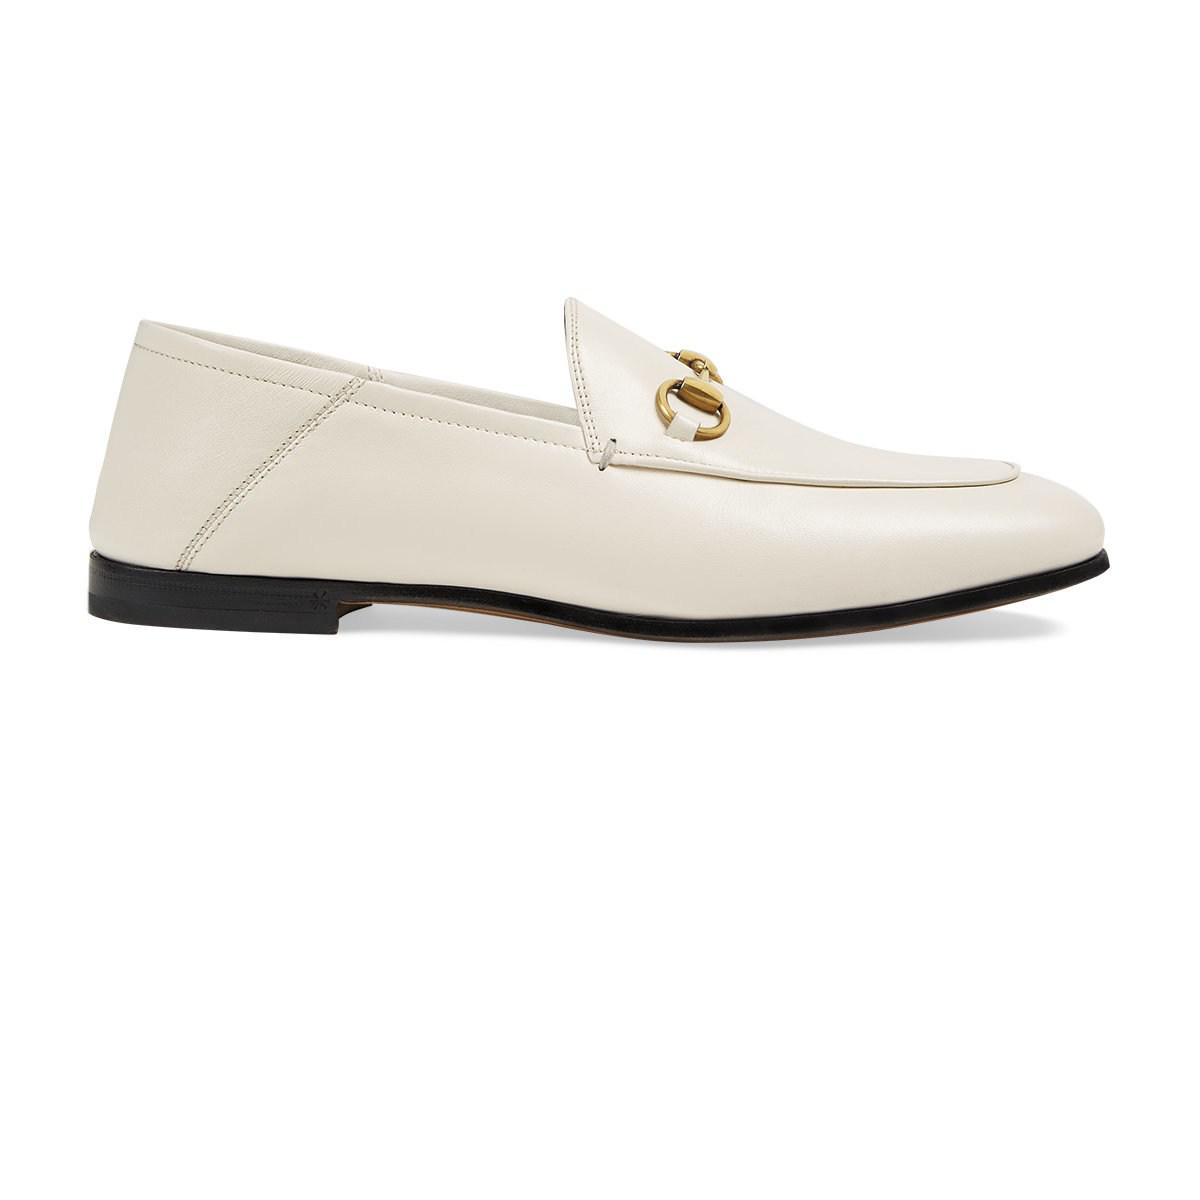 c0309b8caec Lyst - Gucci Brixton Leather Loafers in White